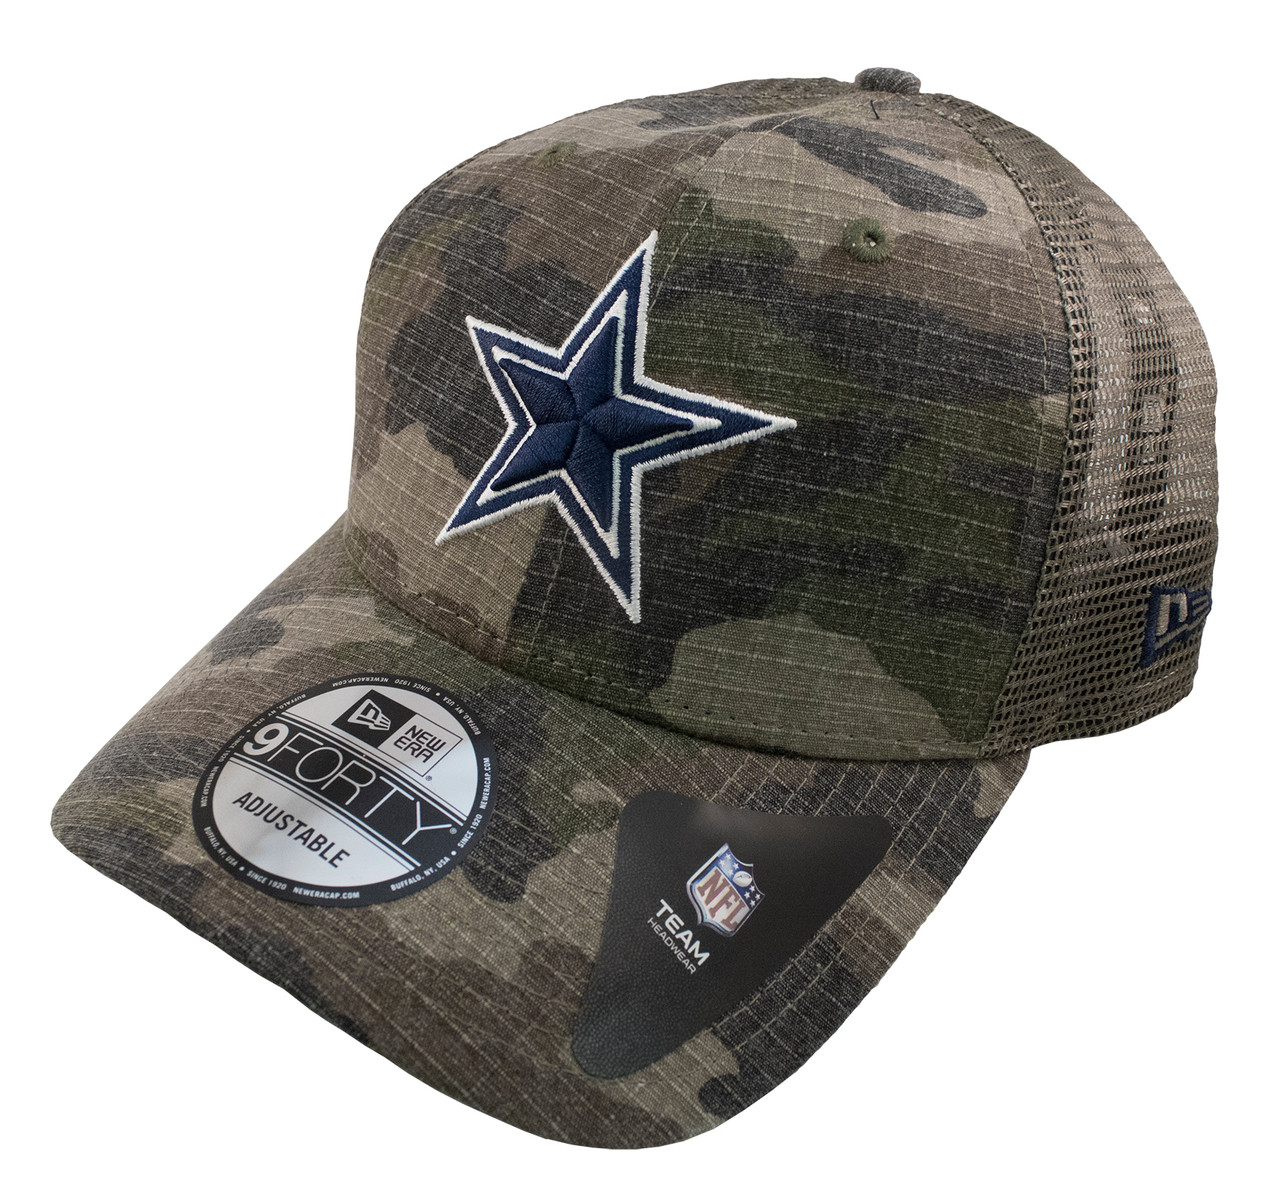 be52c4cac9 Men s New Era Dallas Cowboys Trucker Duel Hat - Sieverts Sporting Goods